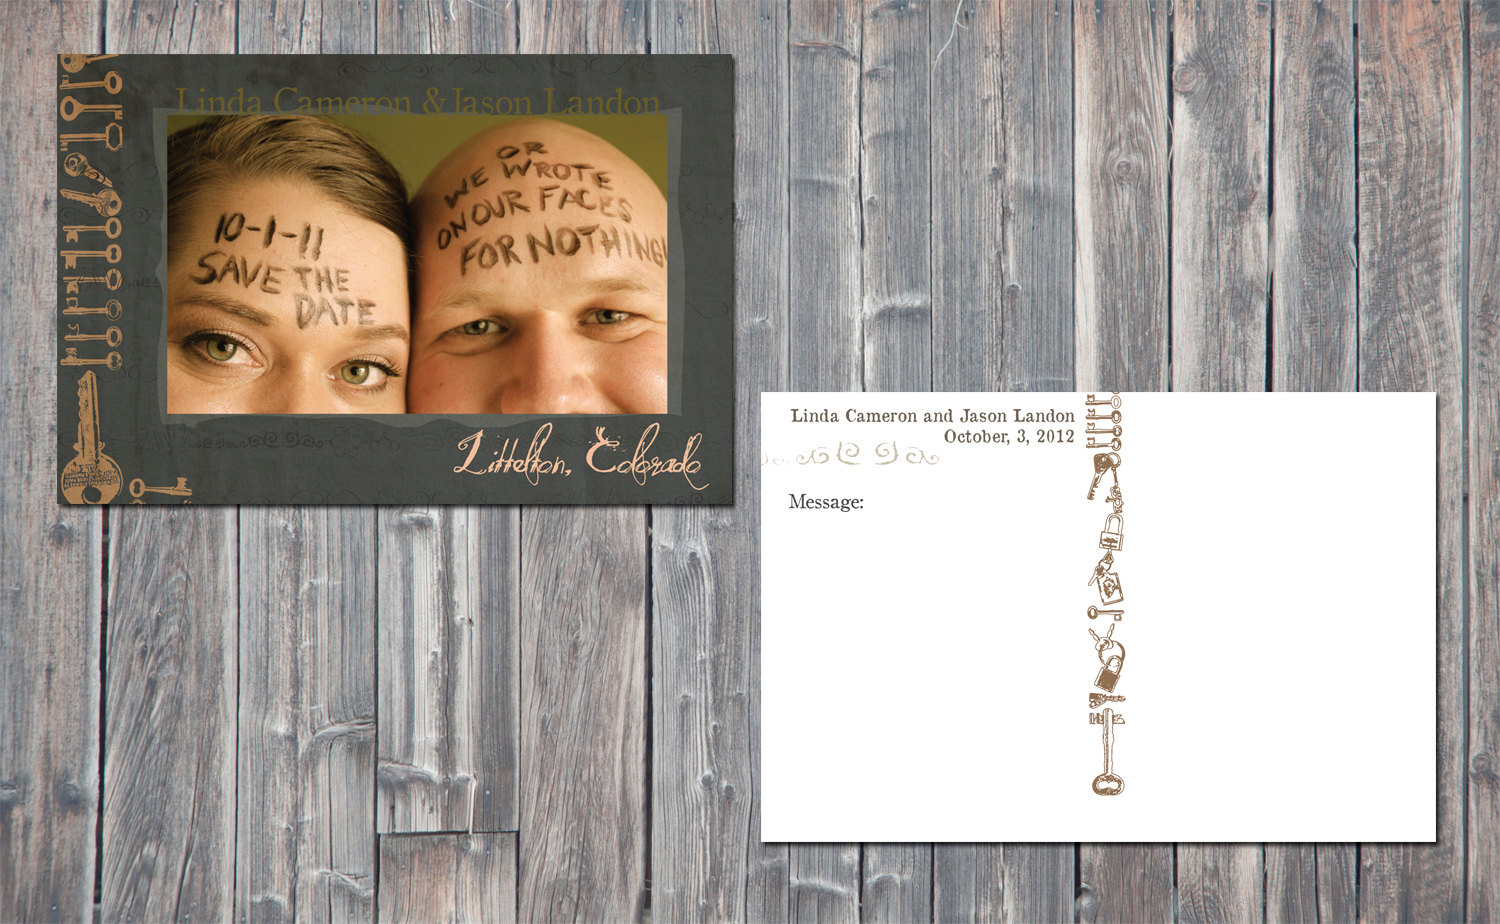 Humorous weddings lol funny cheeky wedding invitations 3 for Some funny wedding invitations